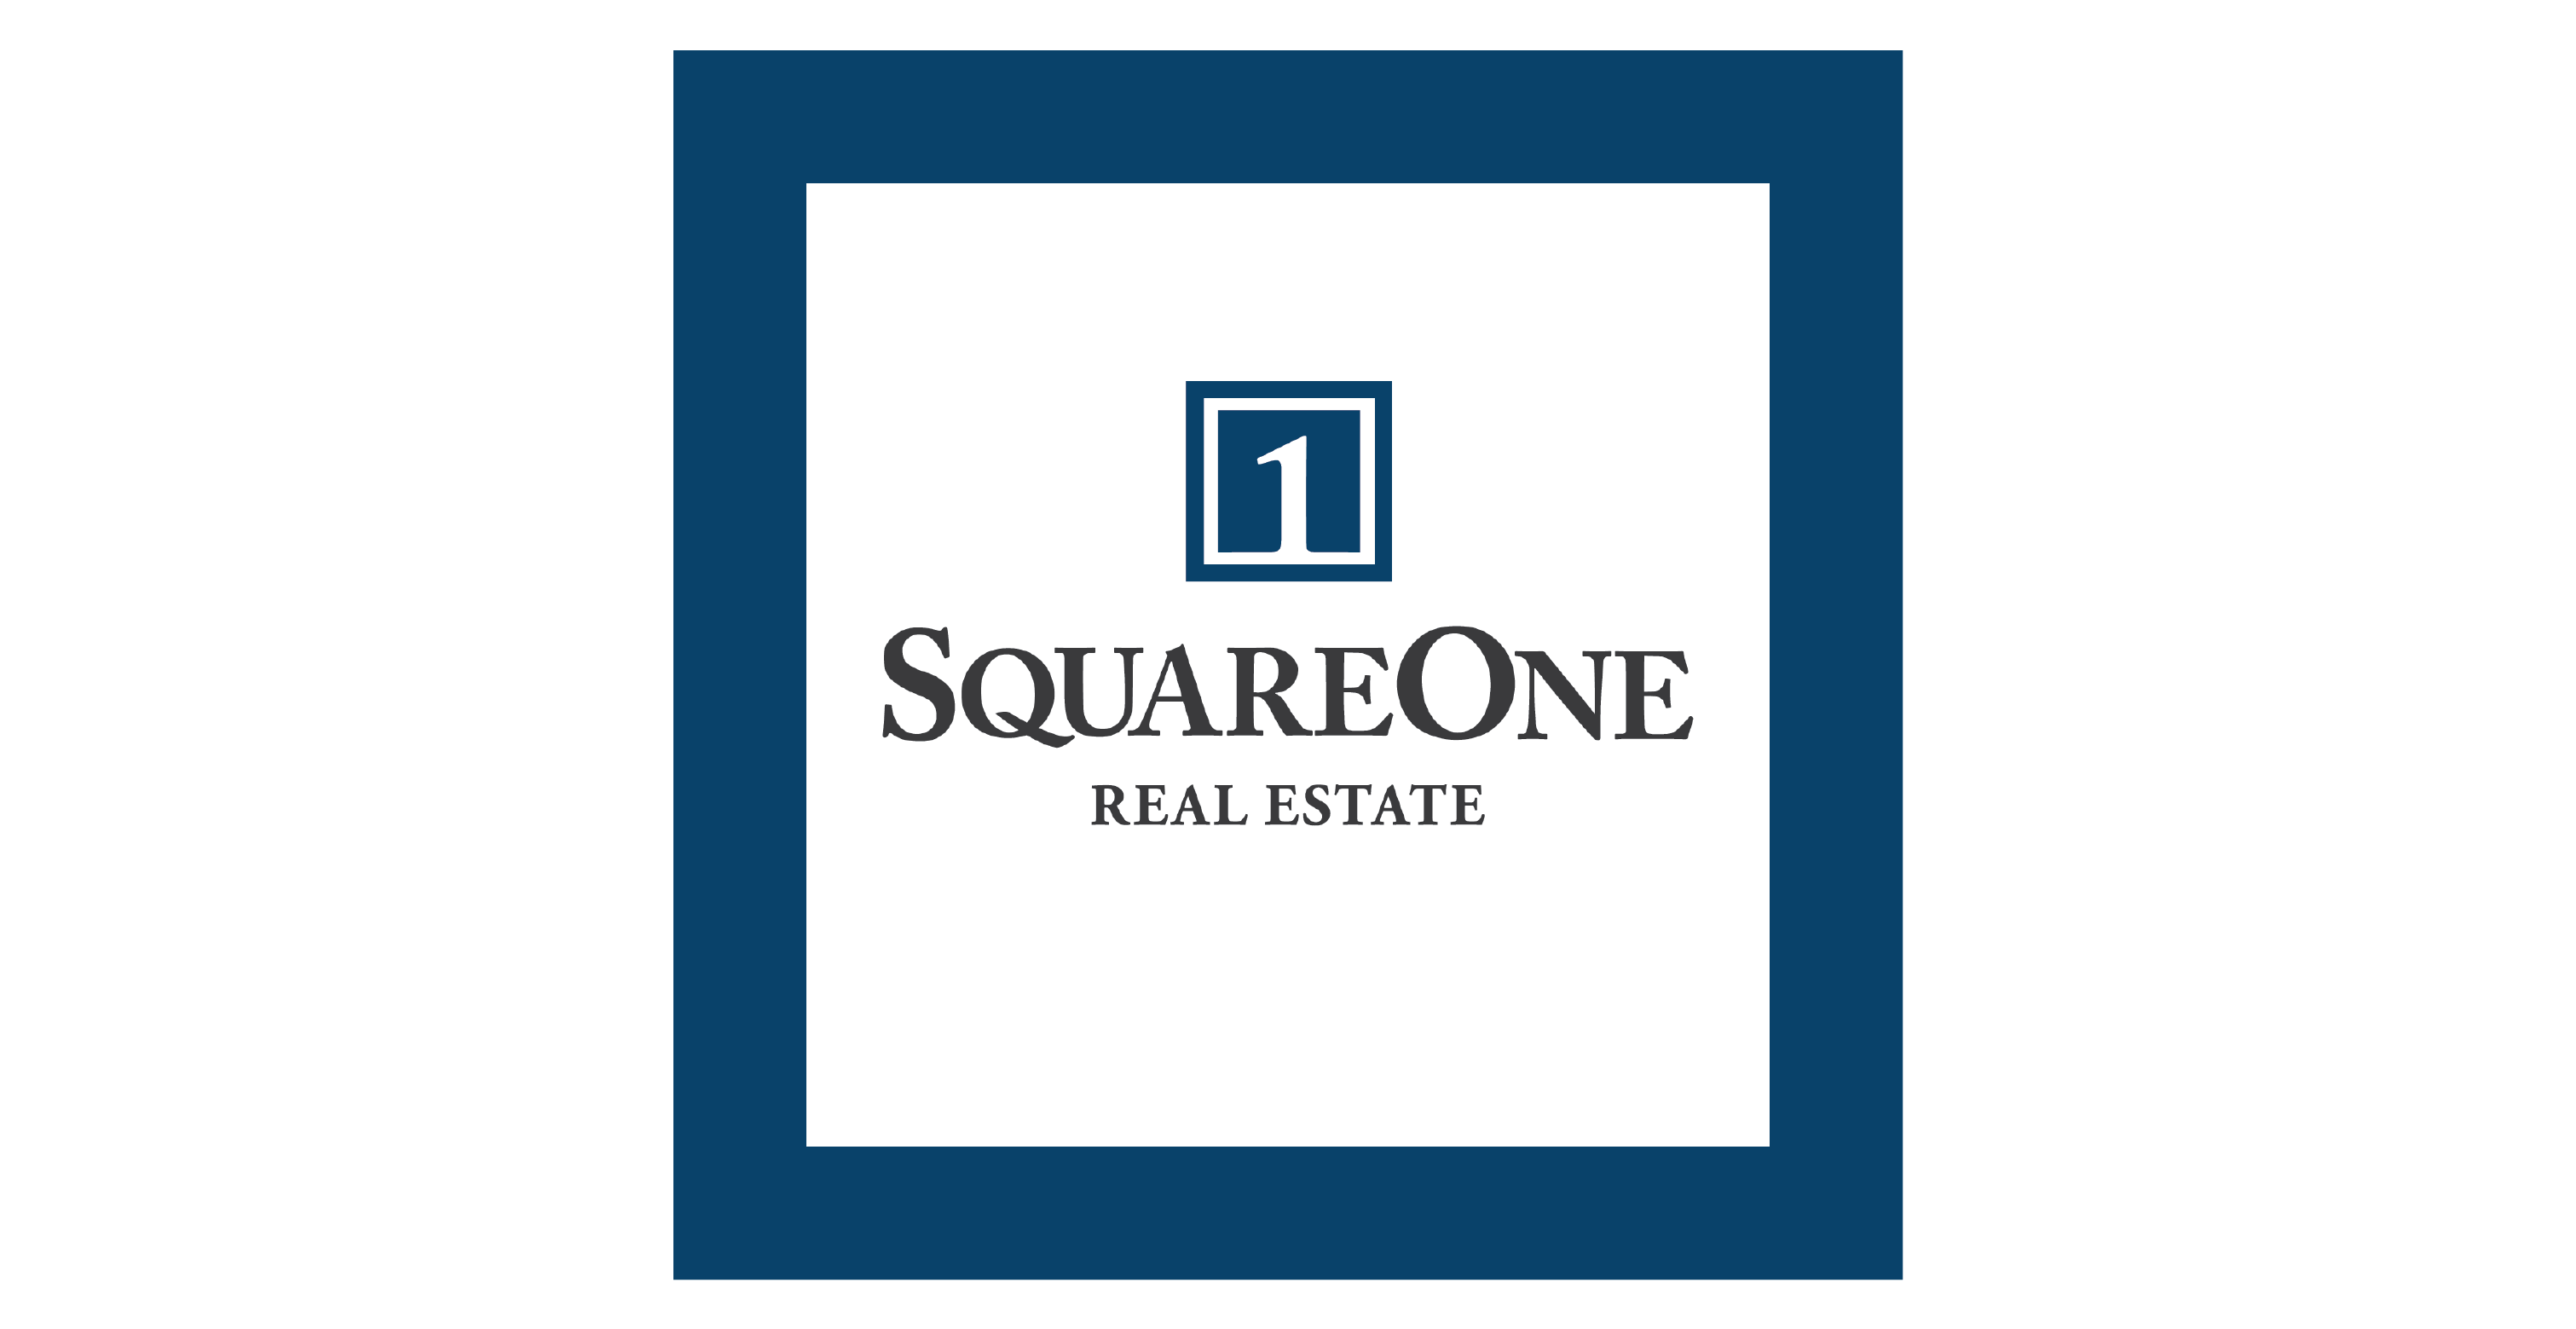 SquareOne Real Estate